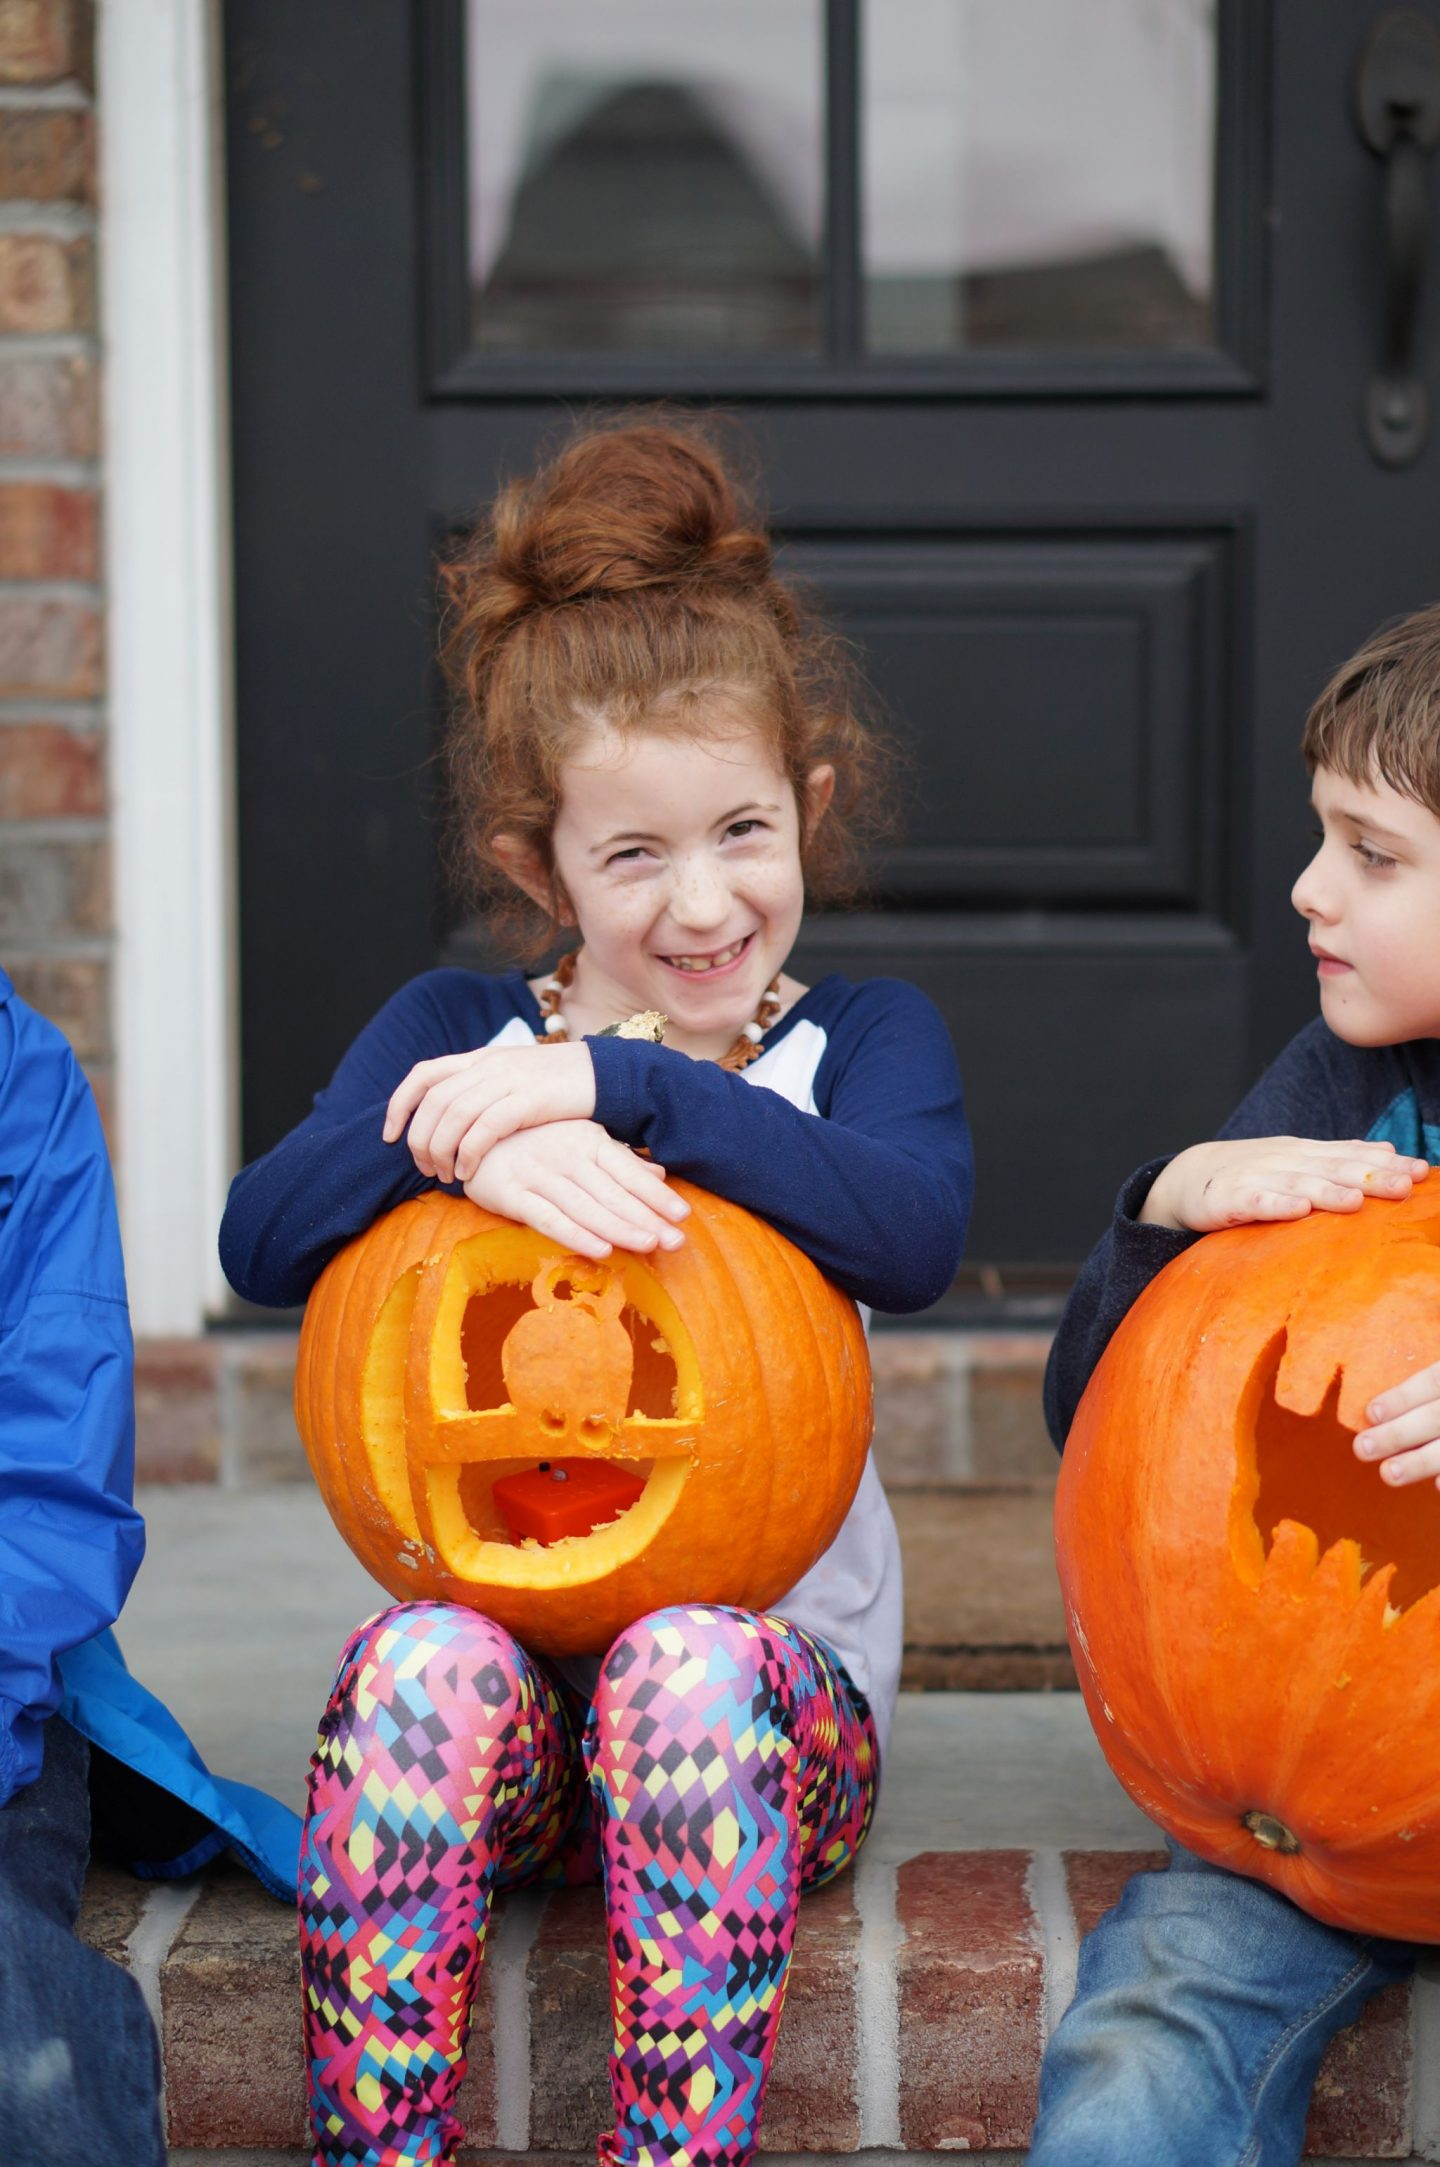 Popular North Carolina blogger Rebecca Lately shares the jack o lanters from her pumpkin carving party. For pumpkin carving inspo, check it out!